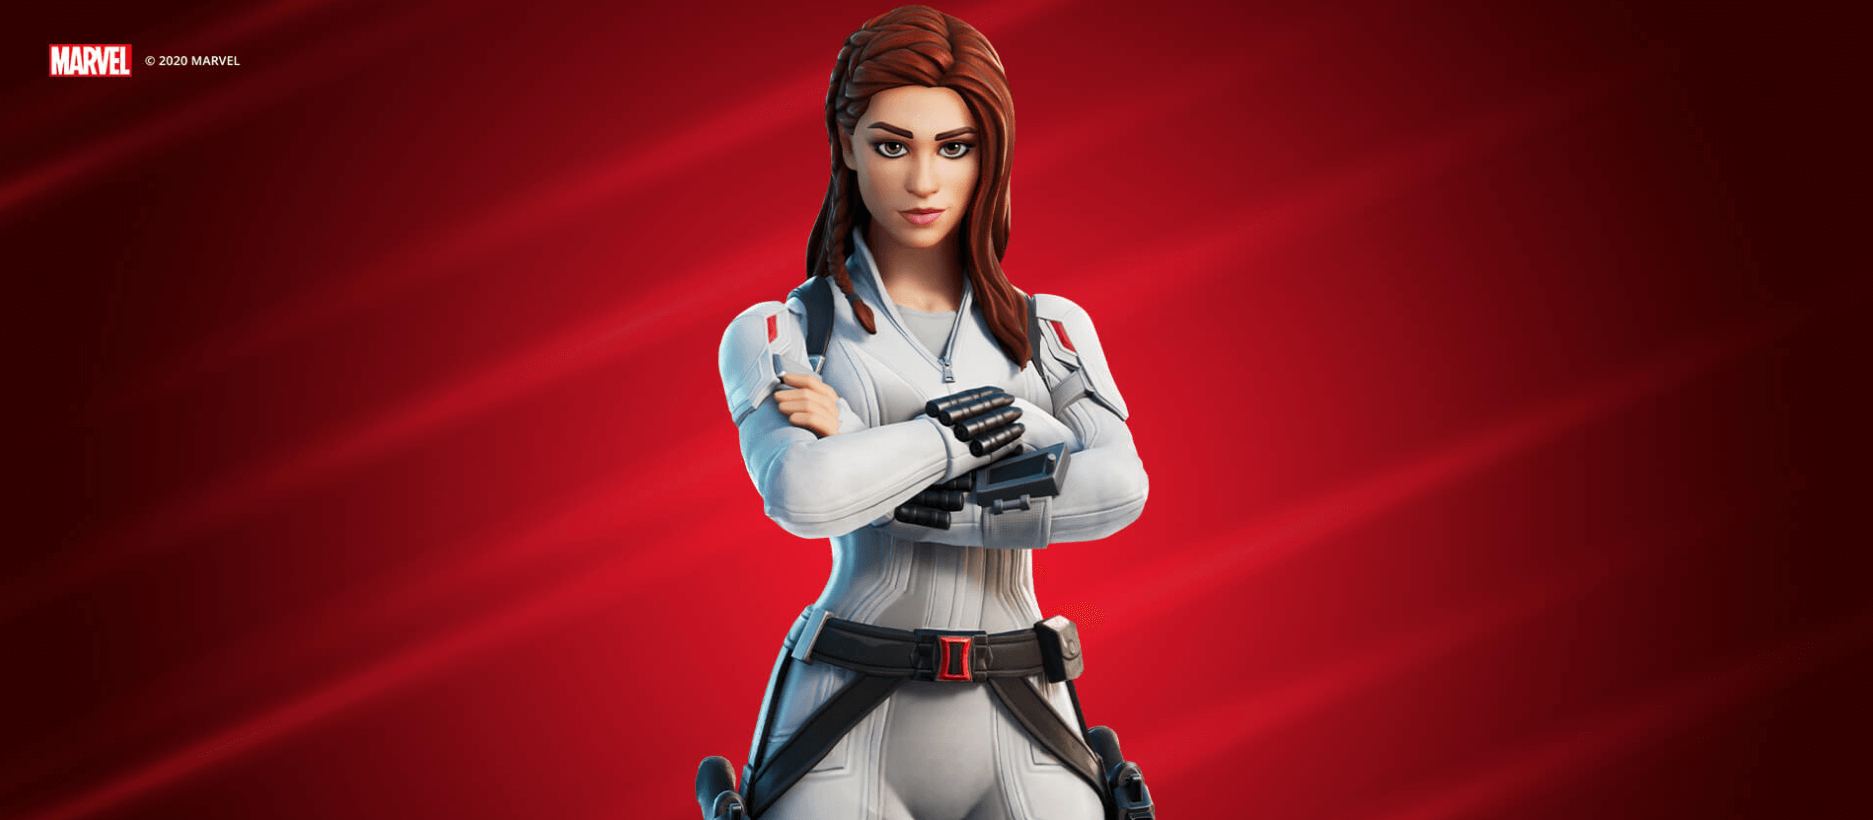 Marvel Knockout Super Series switches to Duos for Black Widow Cup